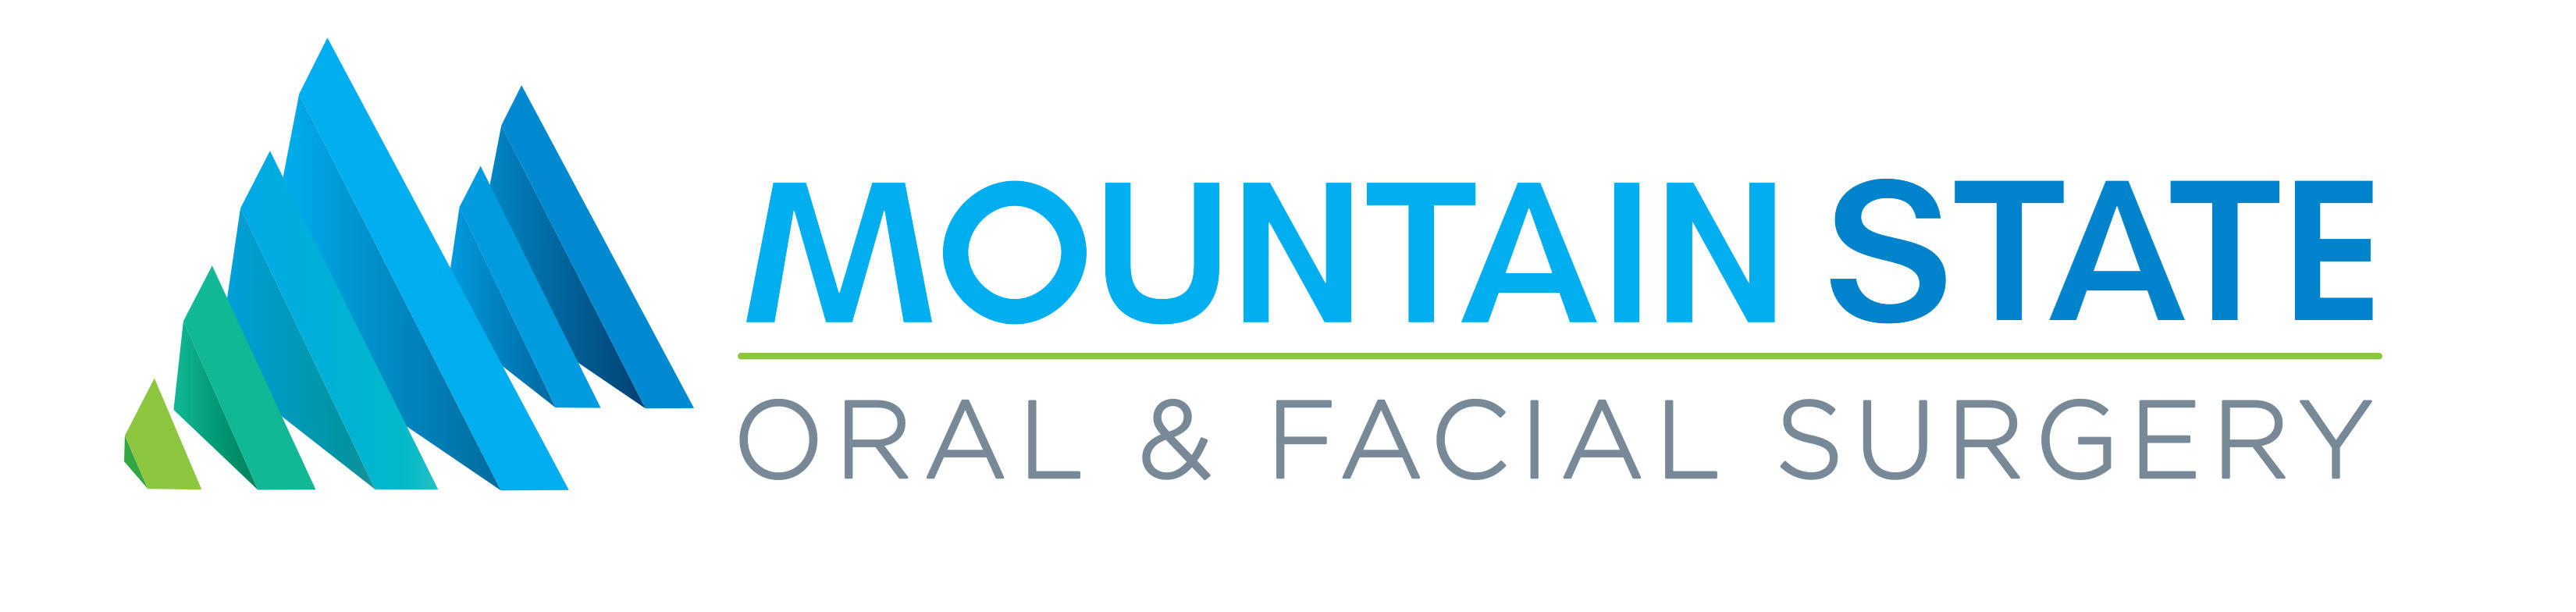 Mountain State Oral & Facial Surgery image 0